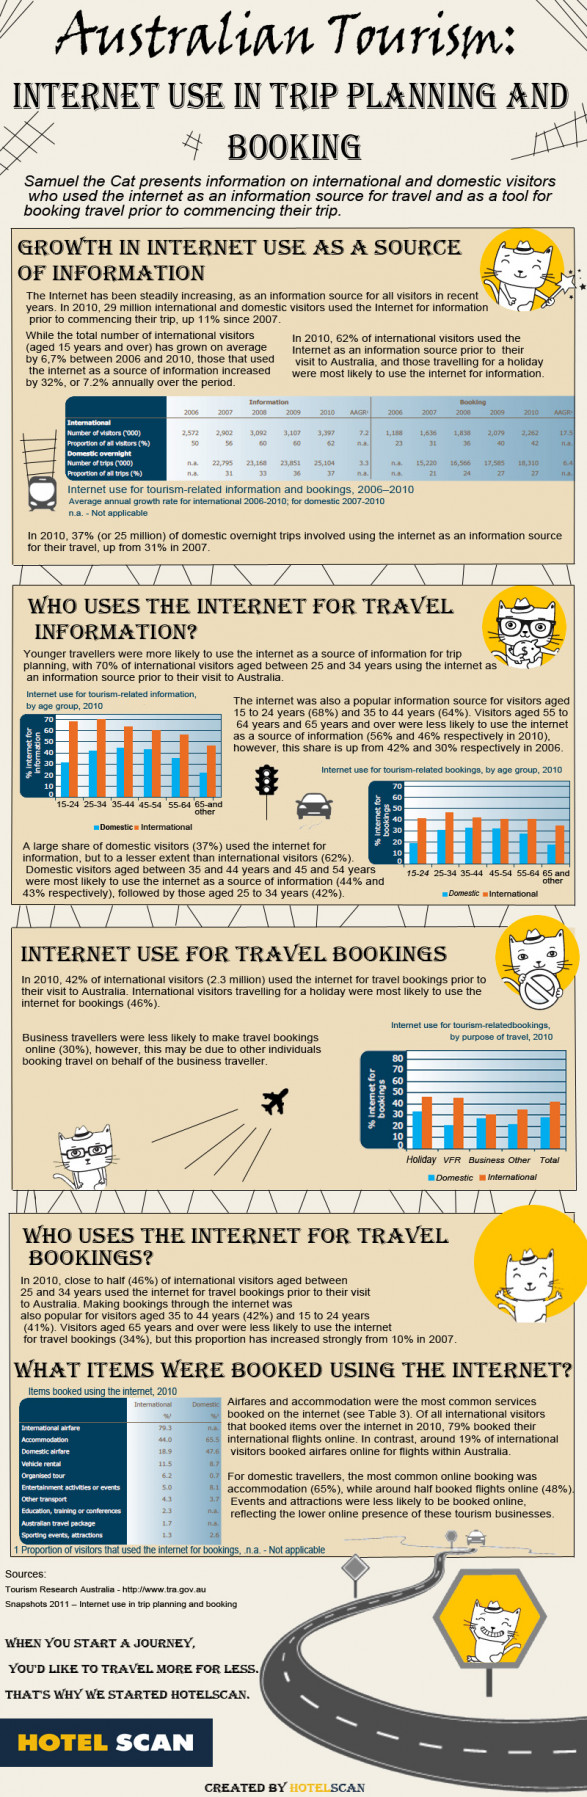 Australian Tourism: Internet Use In Trip Planning And Booking